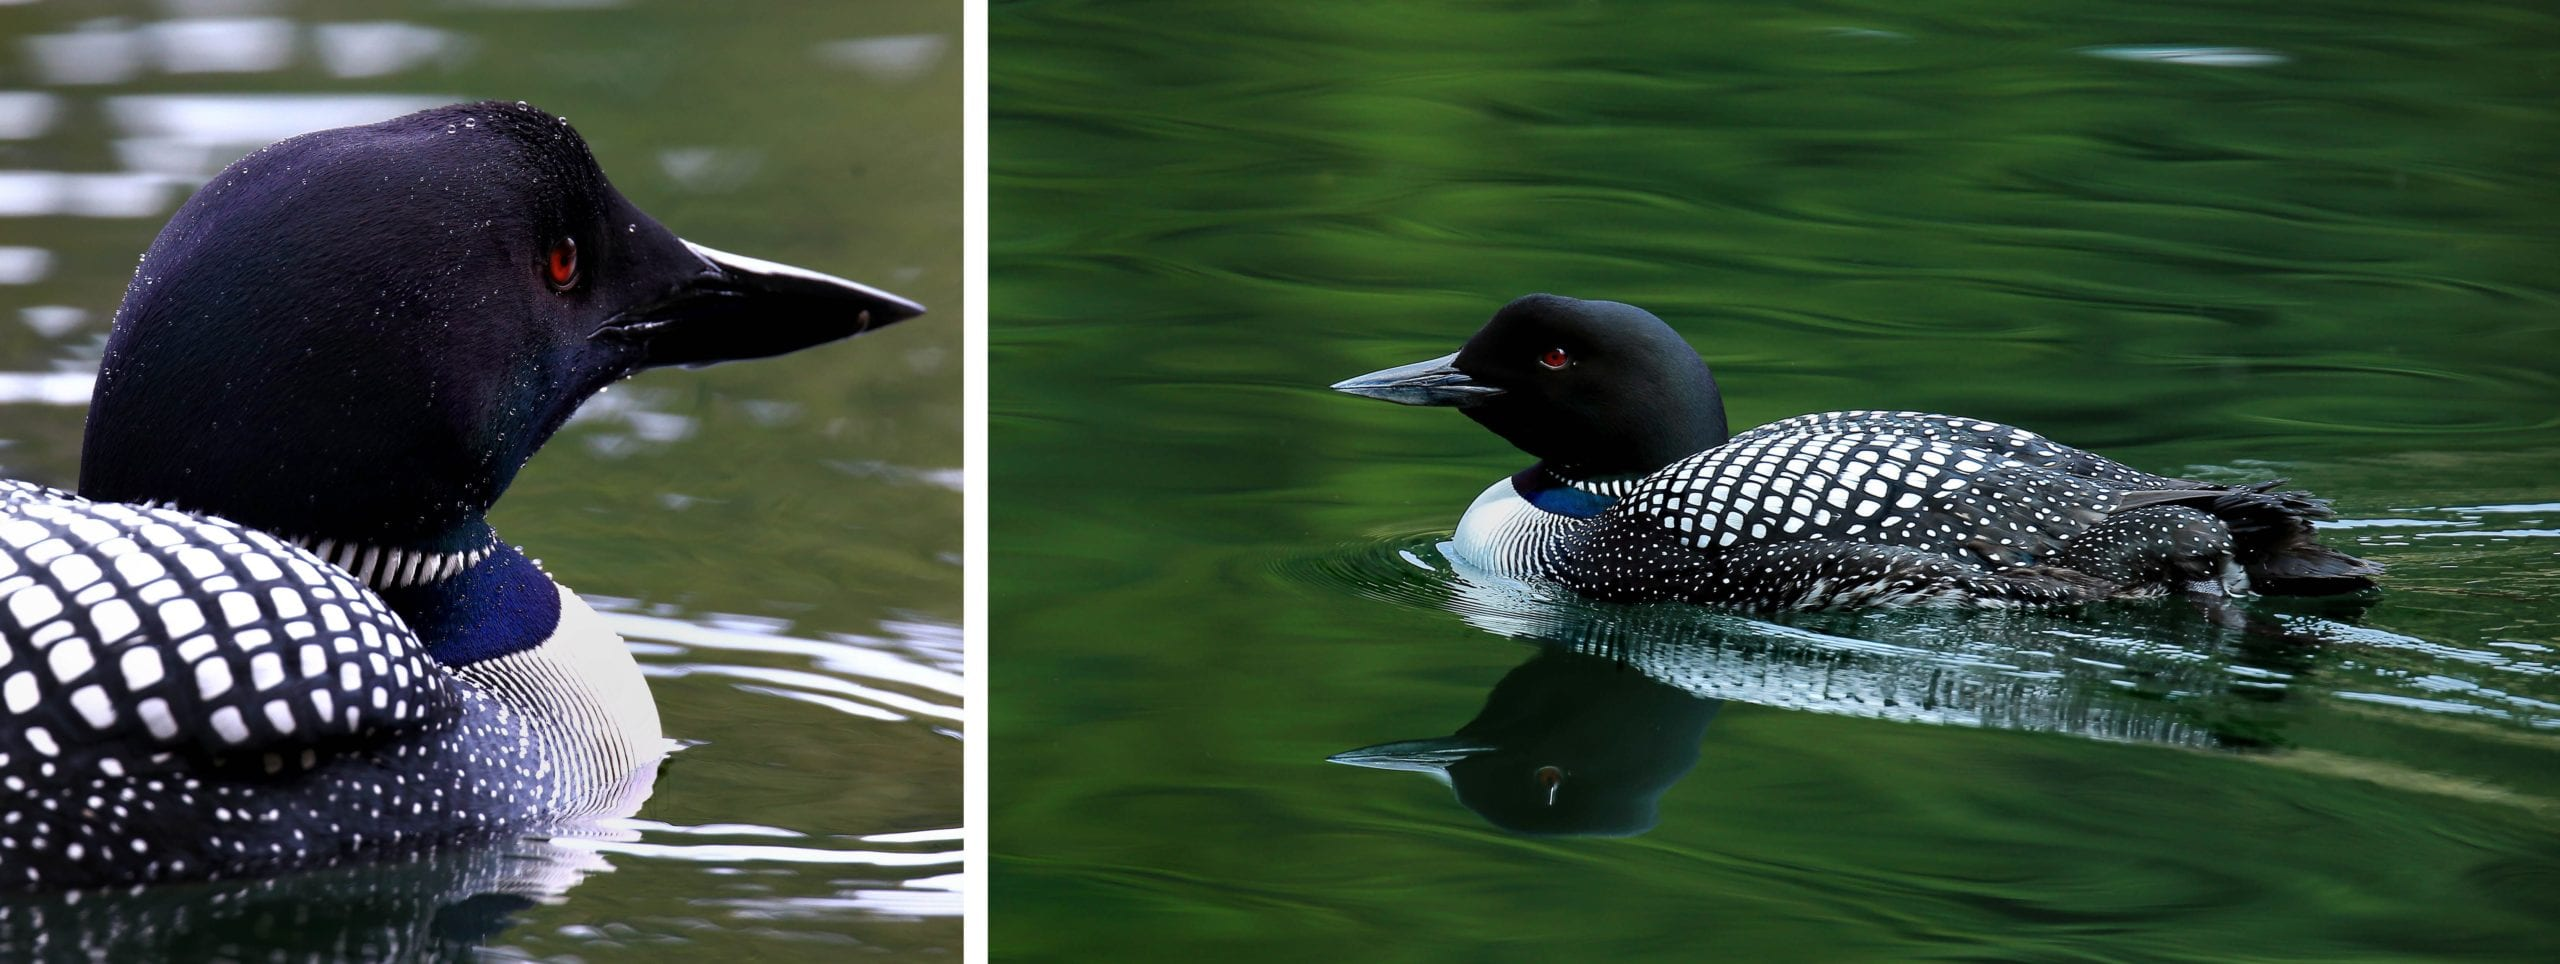 Loons by William Murdock